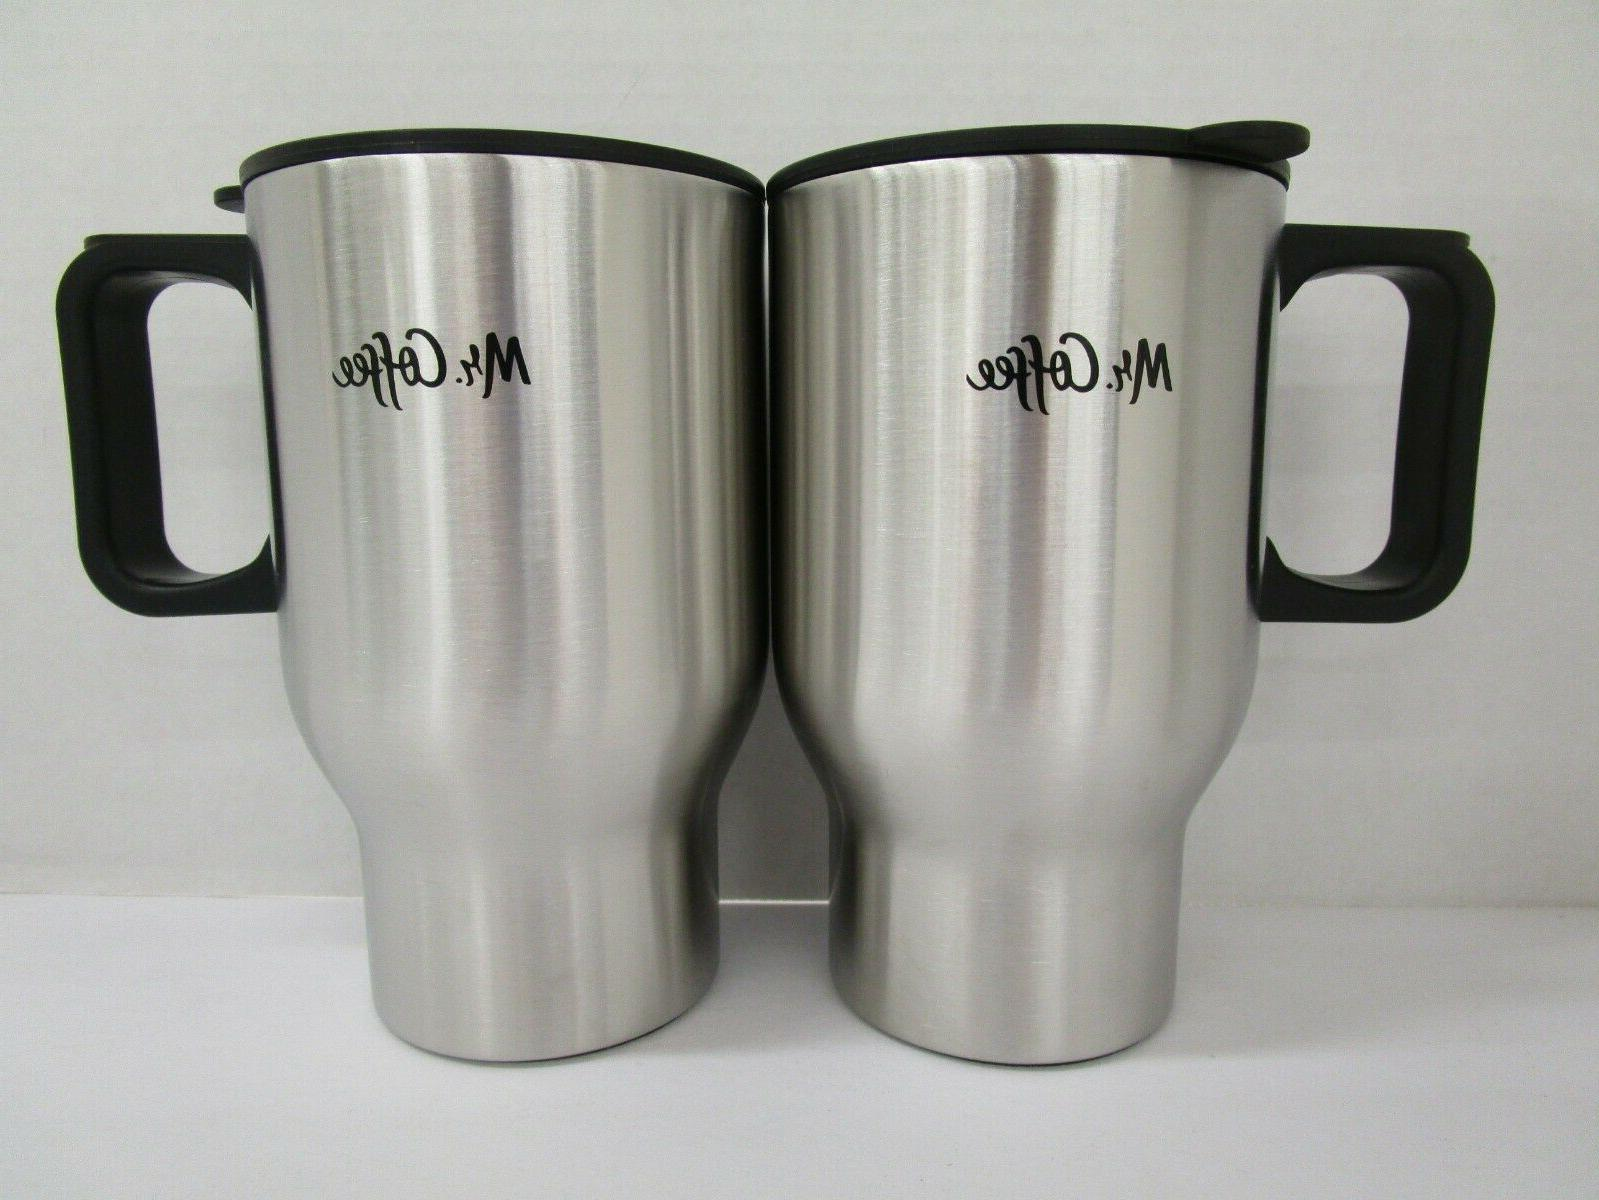 Mr. Coffee 72793.02 Expressway 15 Oz. Stainless Steel Travel